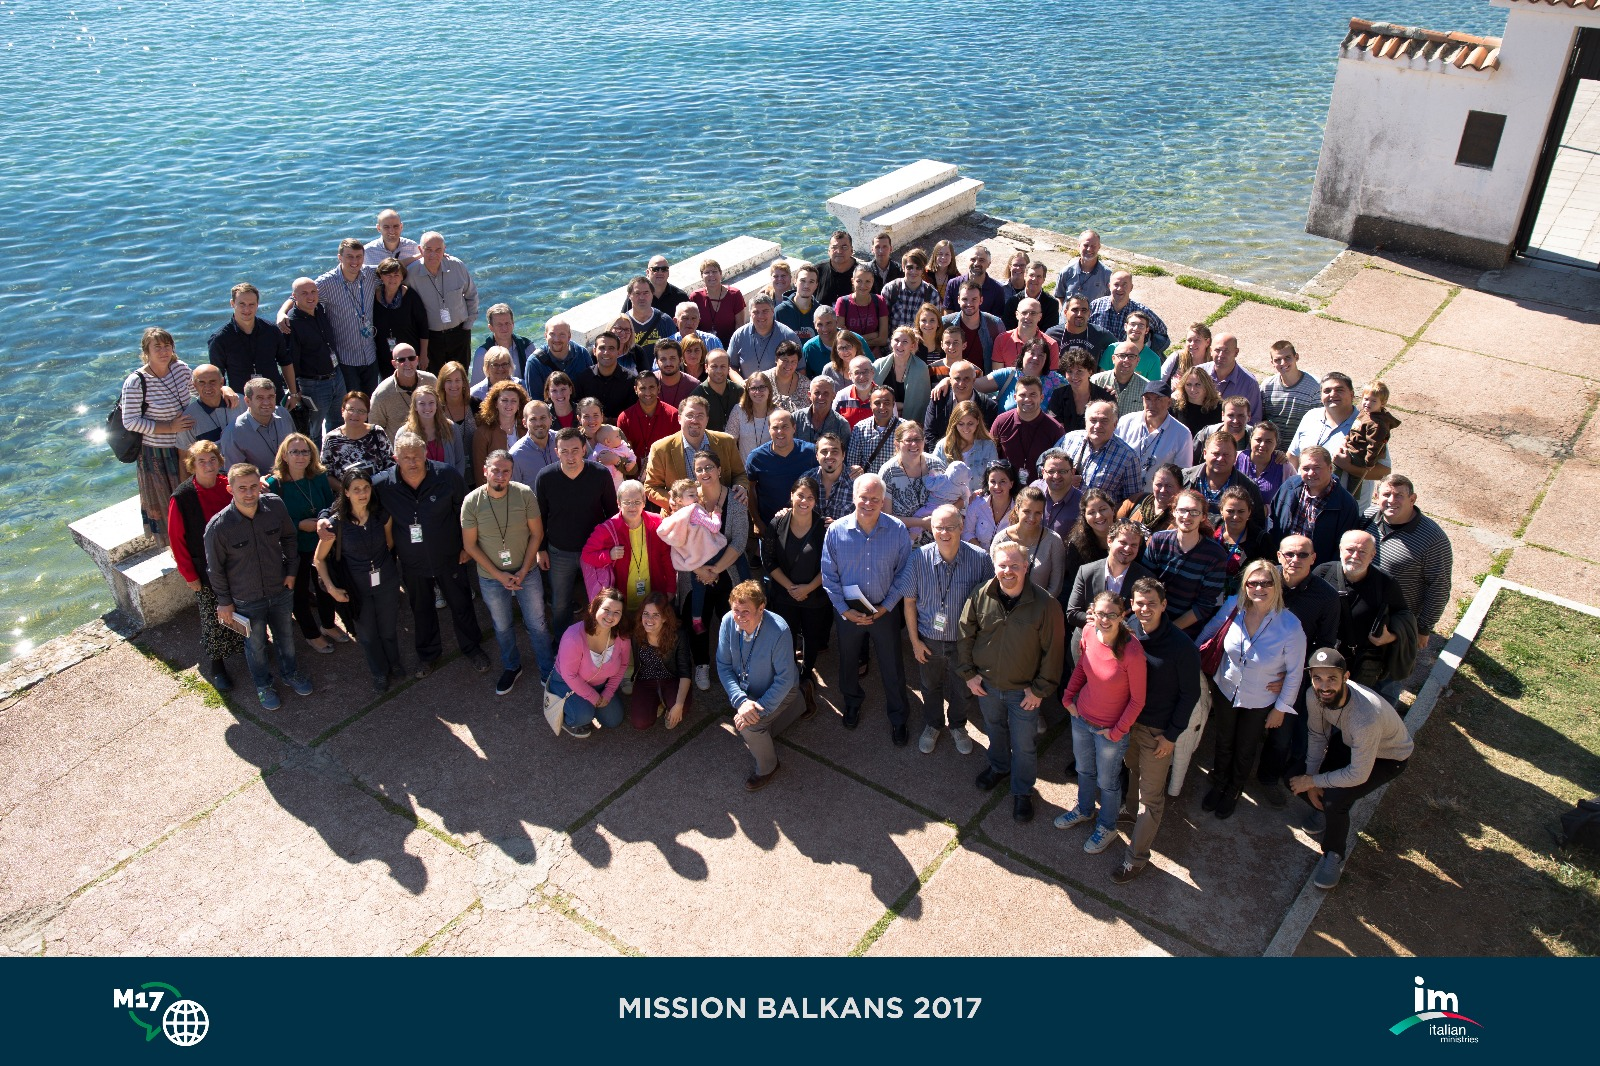 MISSION 2017 - A mission event in the Balkans!During September around 130 leaders met in Macedonia to prayerfully consider the challenge and opportunity of missions. The theme 'Passion for the word, passion for the world' was of great encouragement to all!CLICK HERE FOR FURTHER INFORMATION